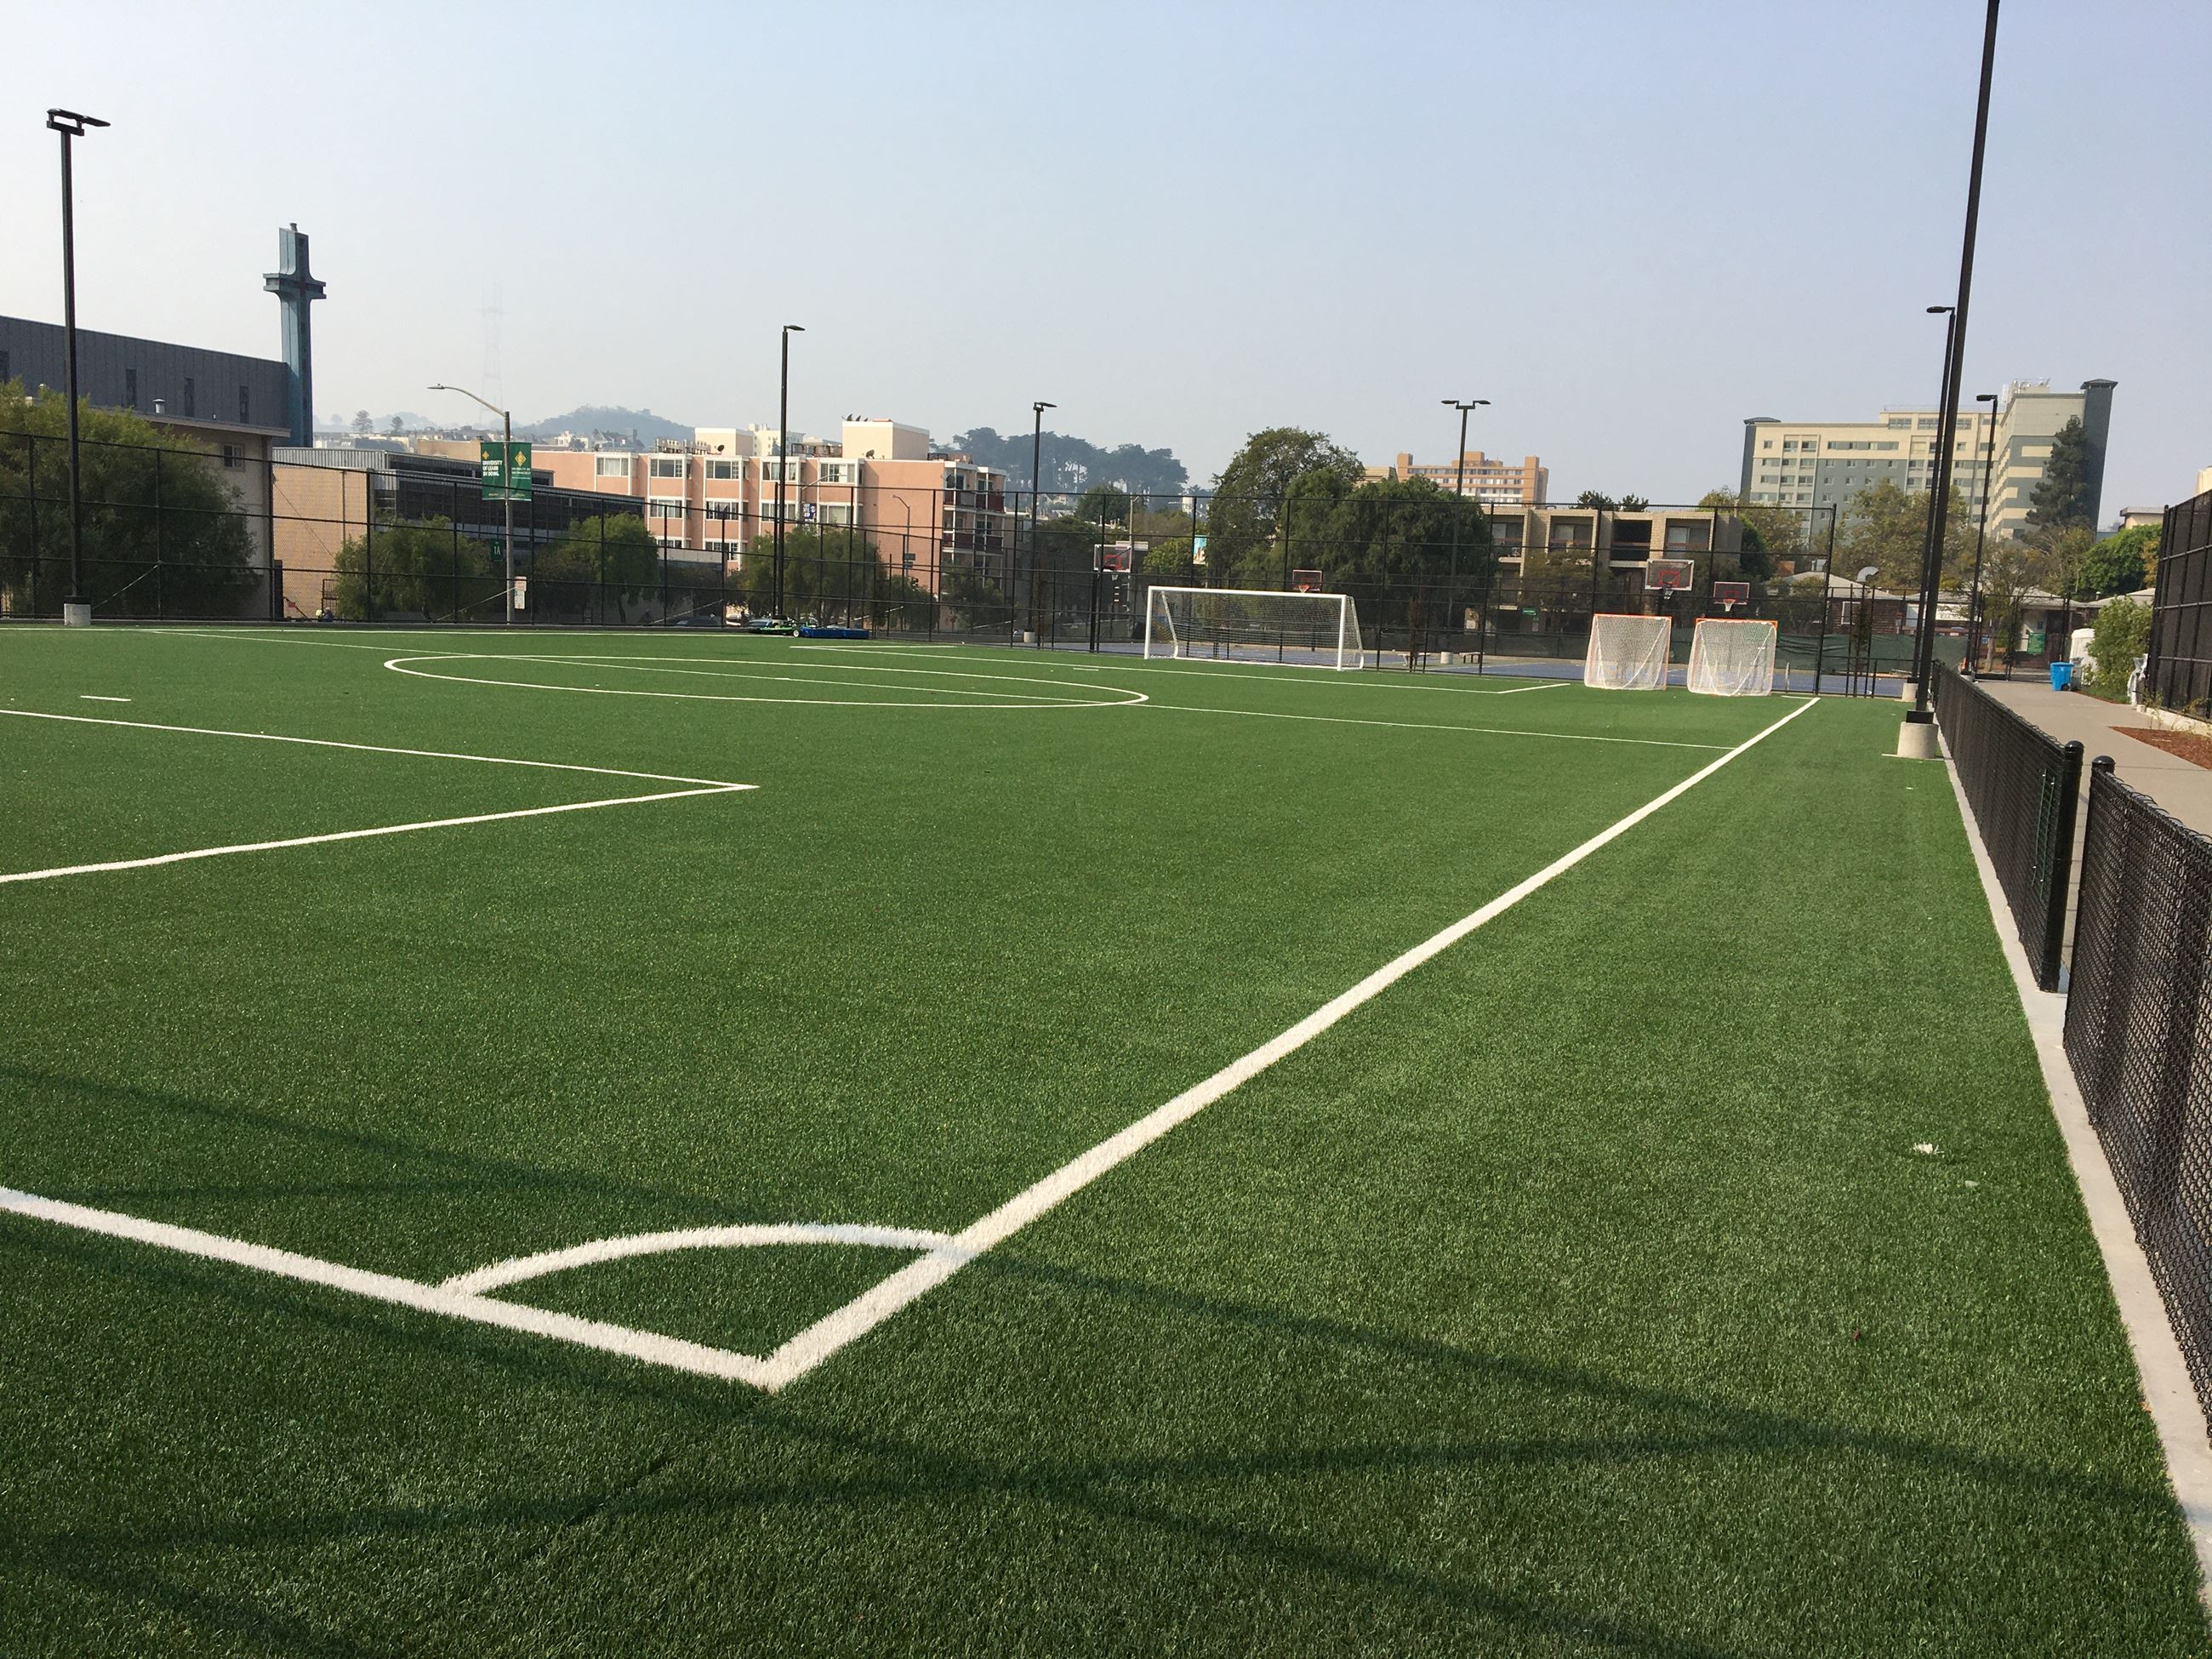 Multi purpose field with soccer goals surrounded by black coated metal fencing